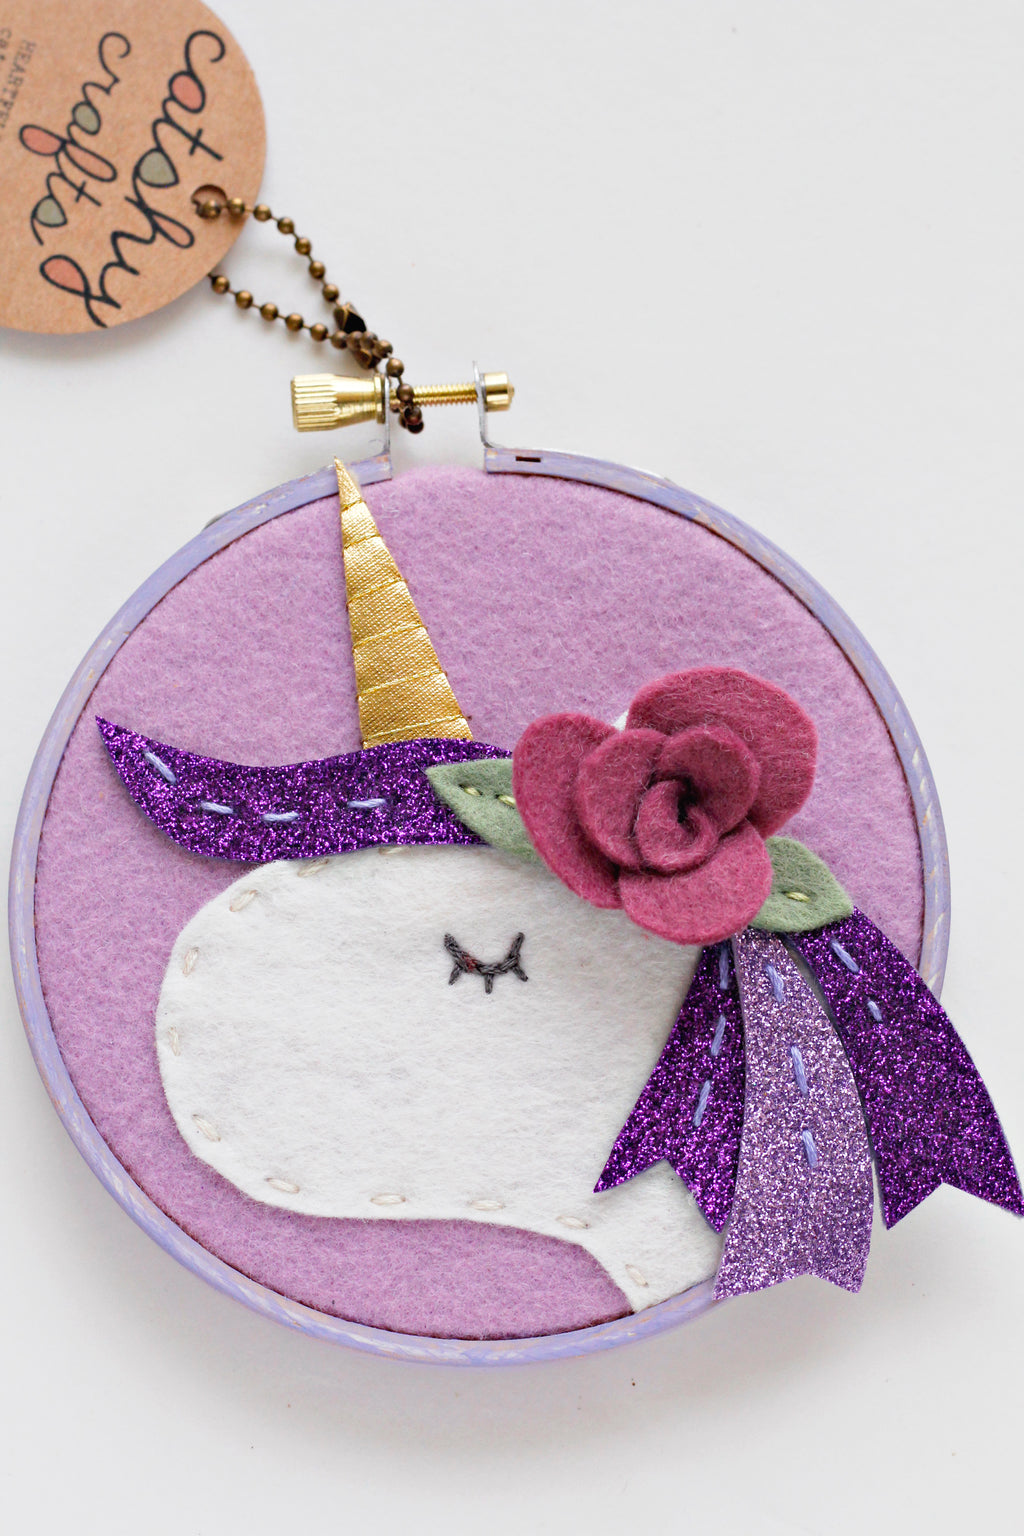 Purple Unicorn Embroidery Hoop Art with Mulberry Flower